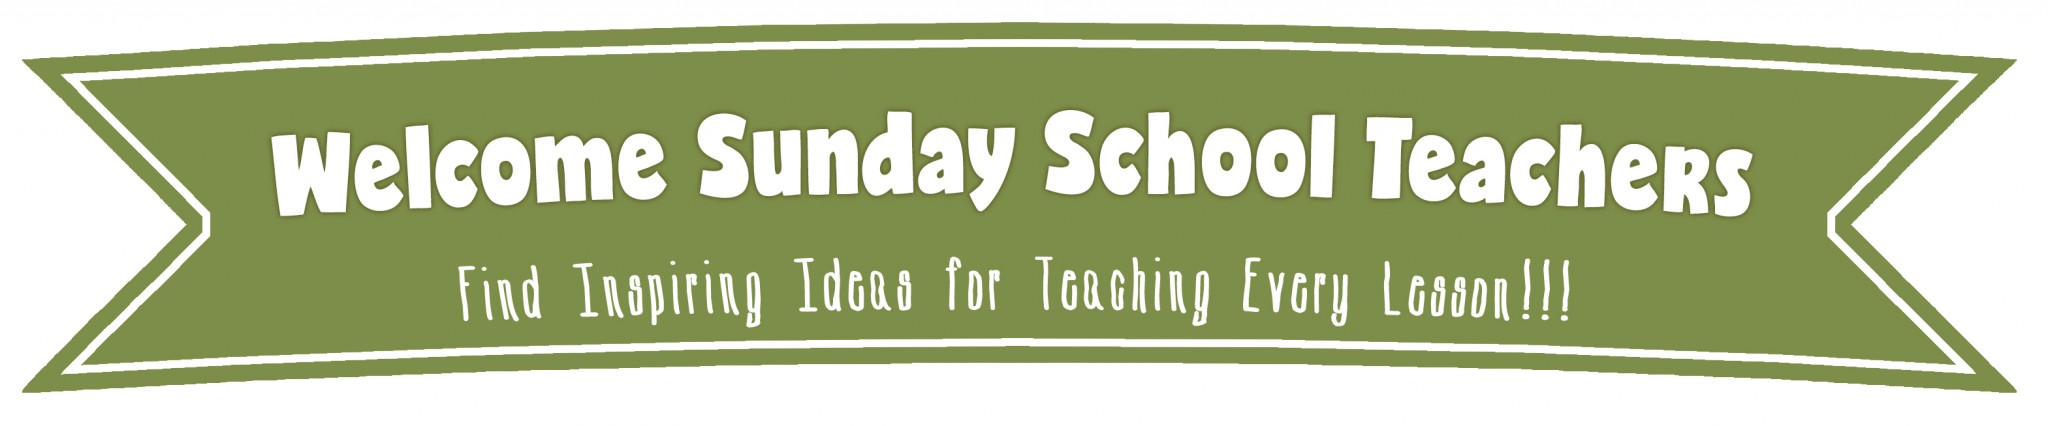 Welcome Sunday School Teachers